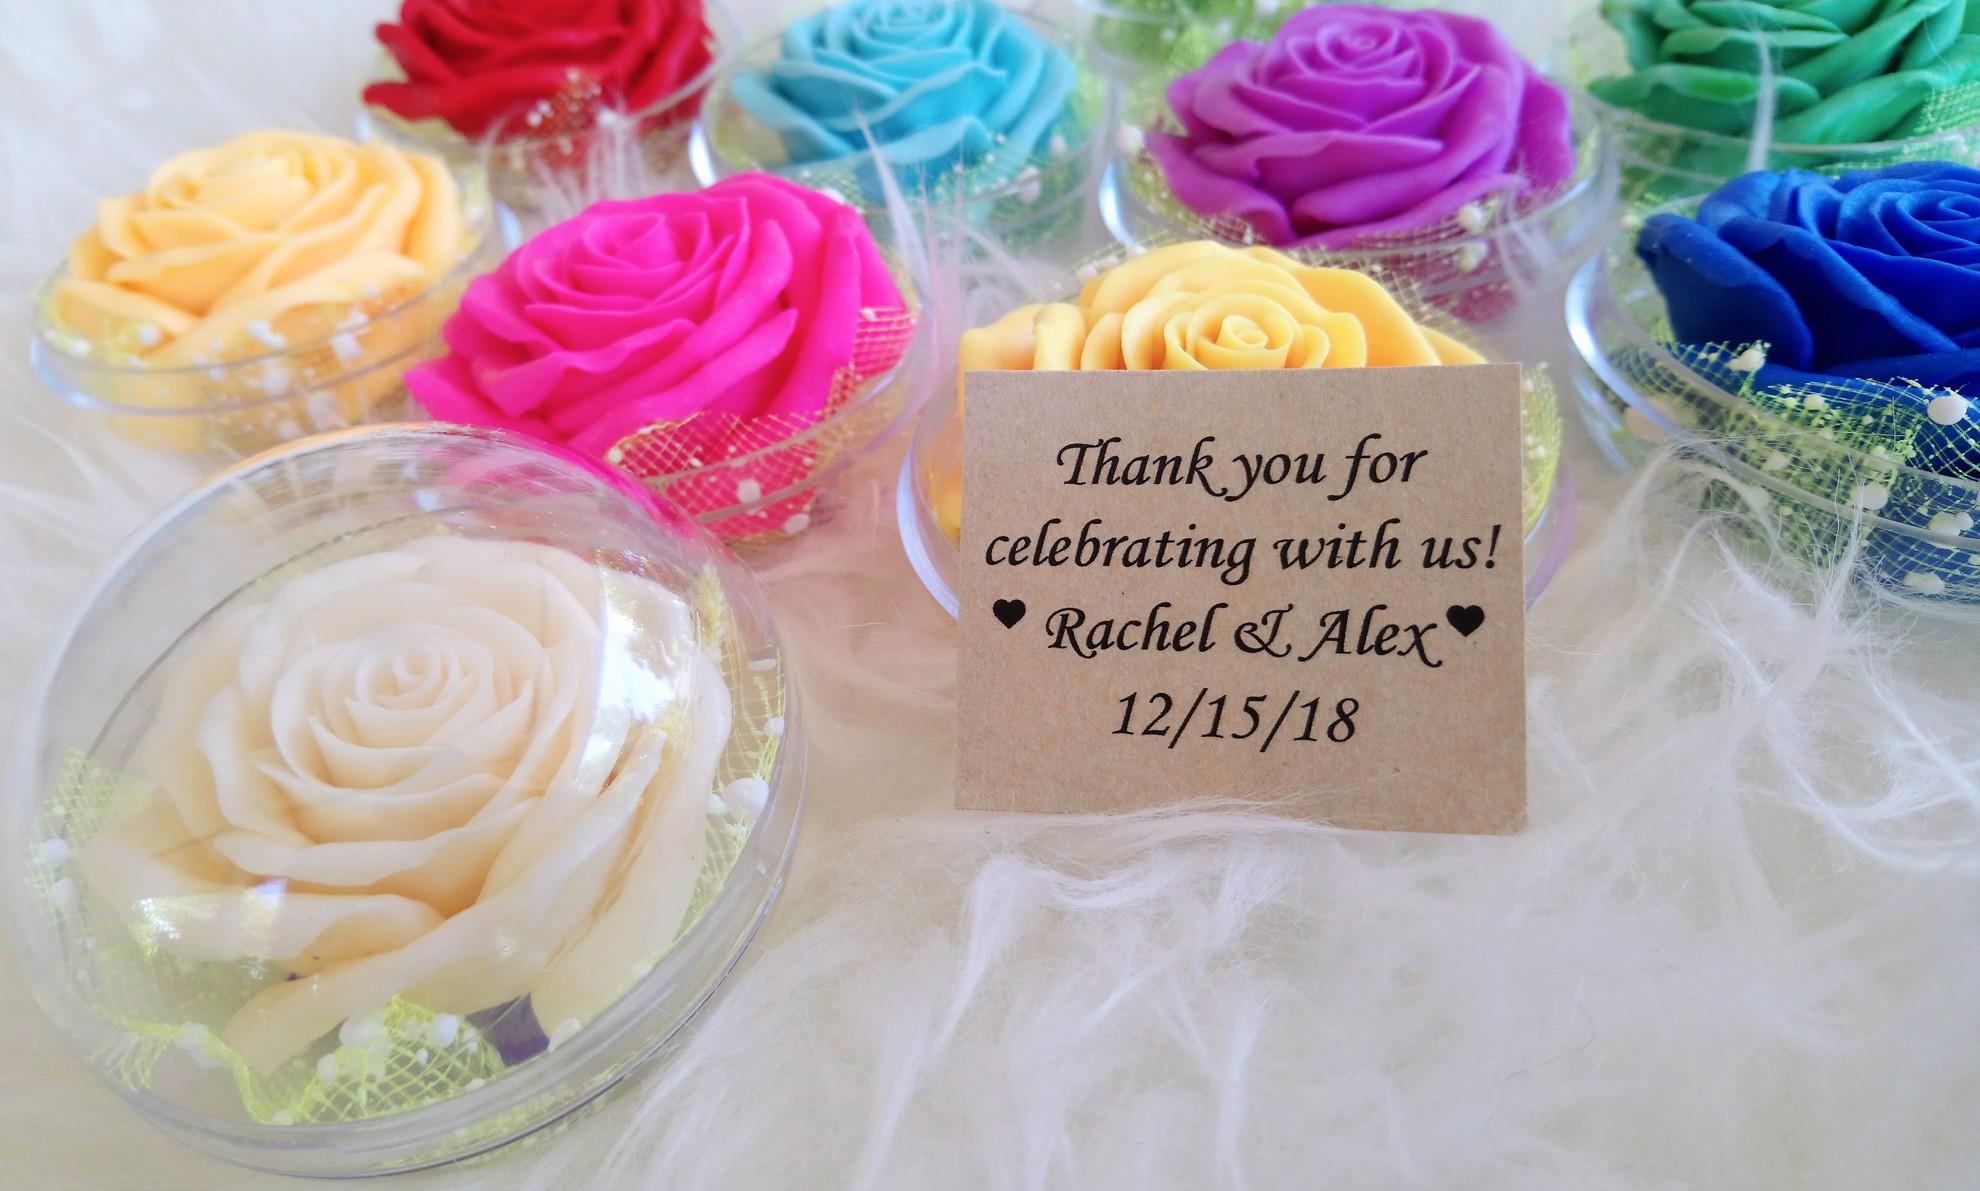 Picture of Wedding Favors Pack of Large Rose Flower Soap Carving, Rose Aroma Essential Oil, Handmade by Artisan, Personalized Message